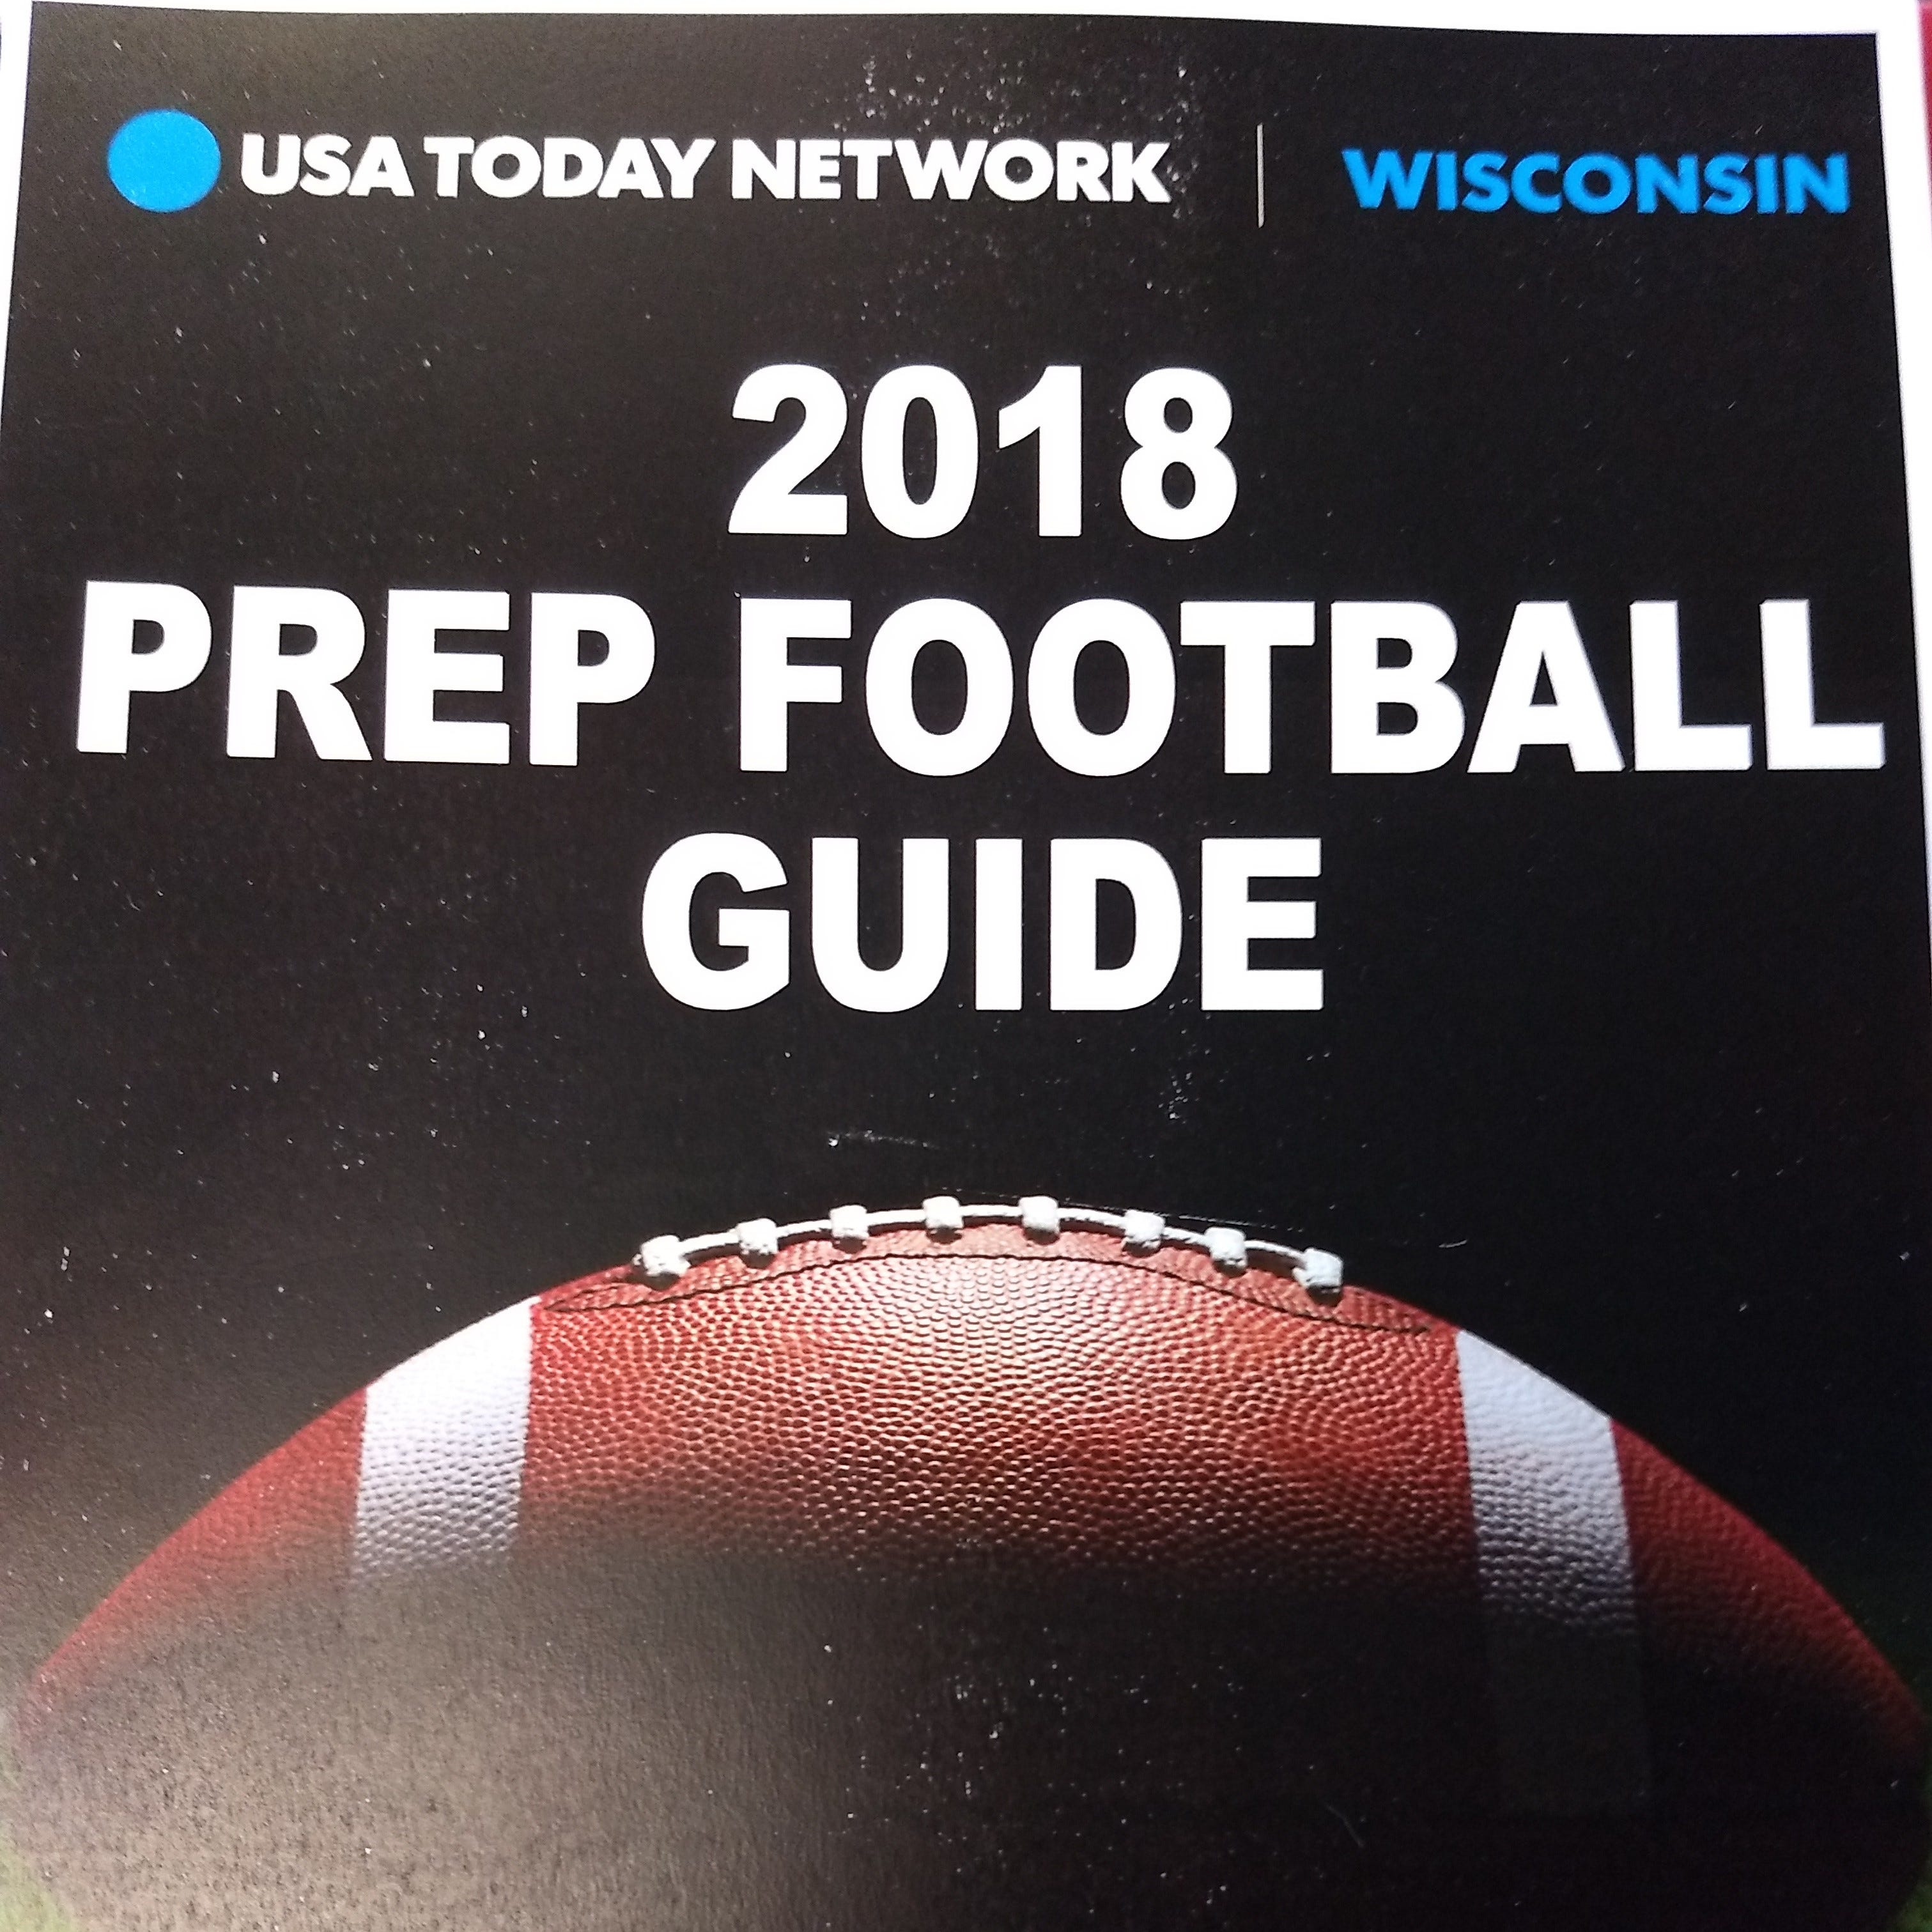 Prep football guide is available